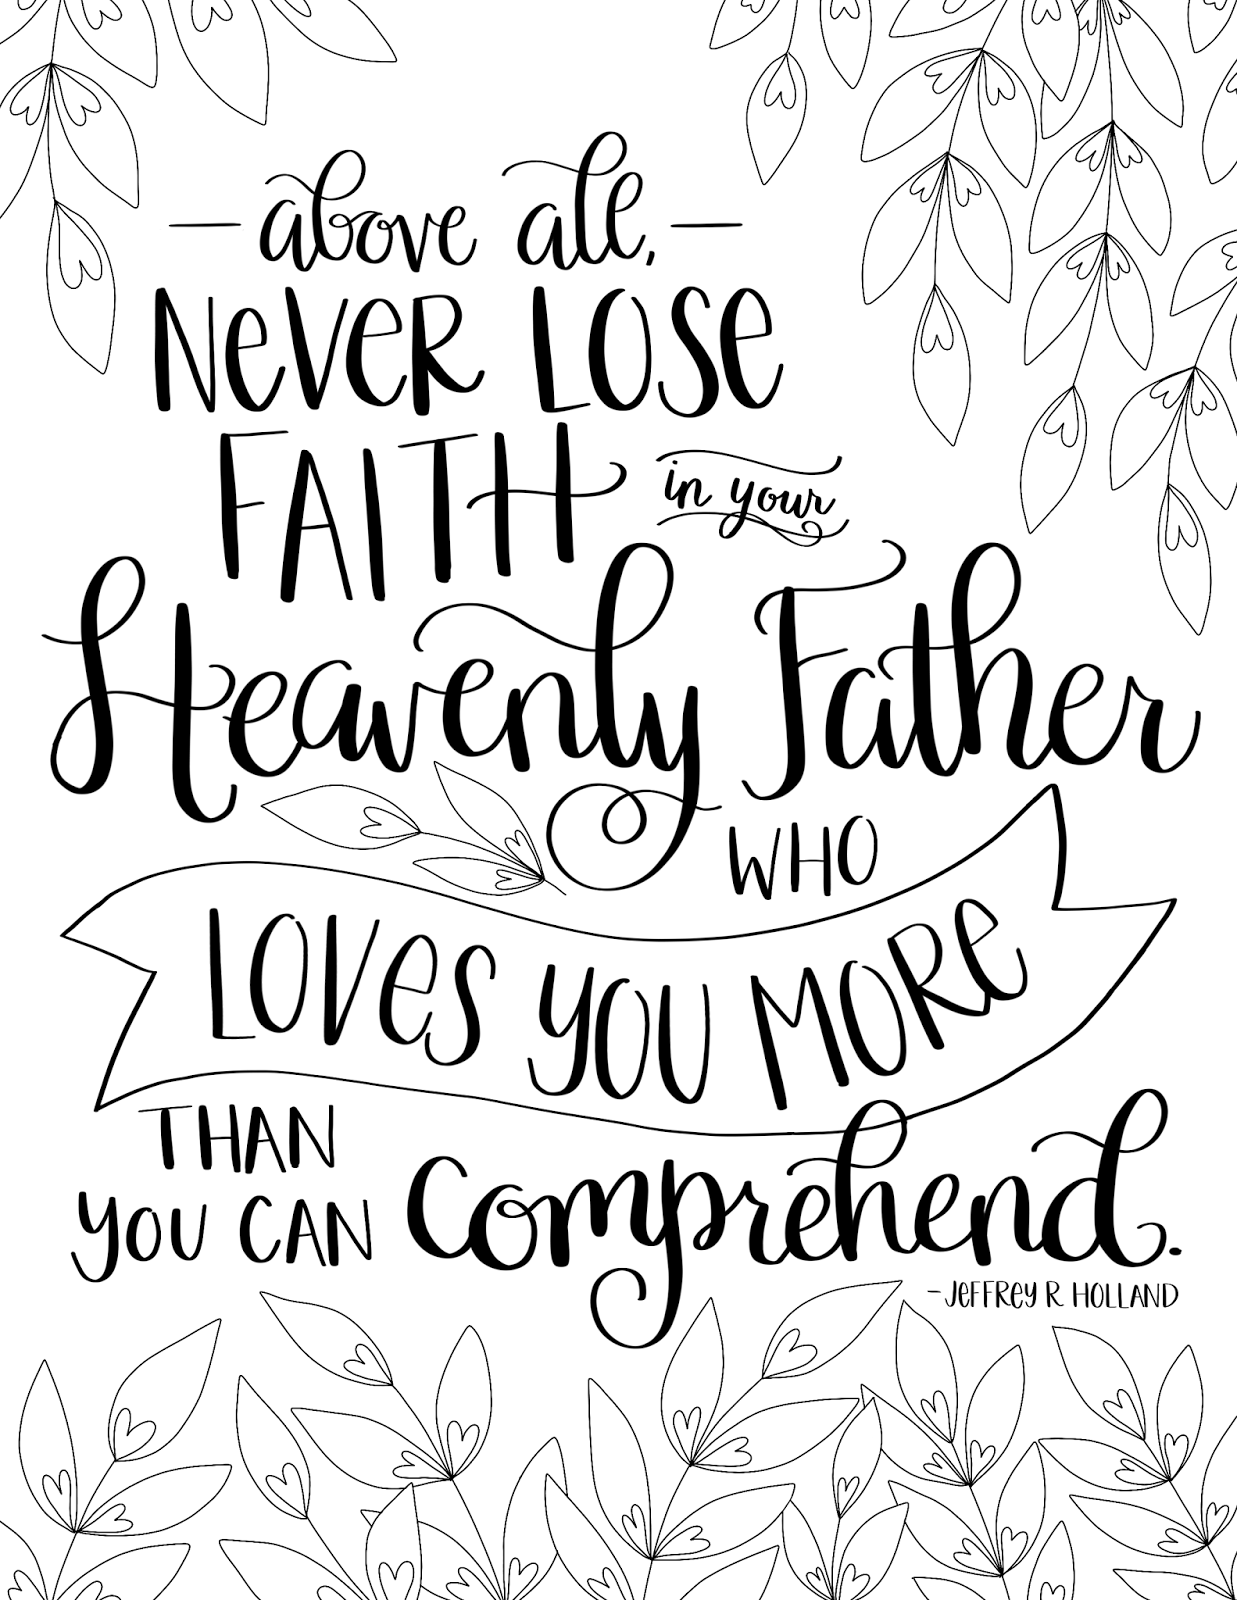 Heavenly Father Loves You More